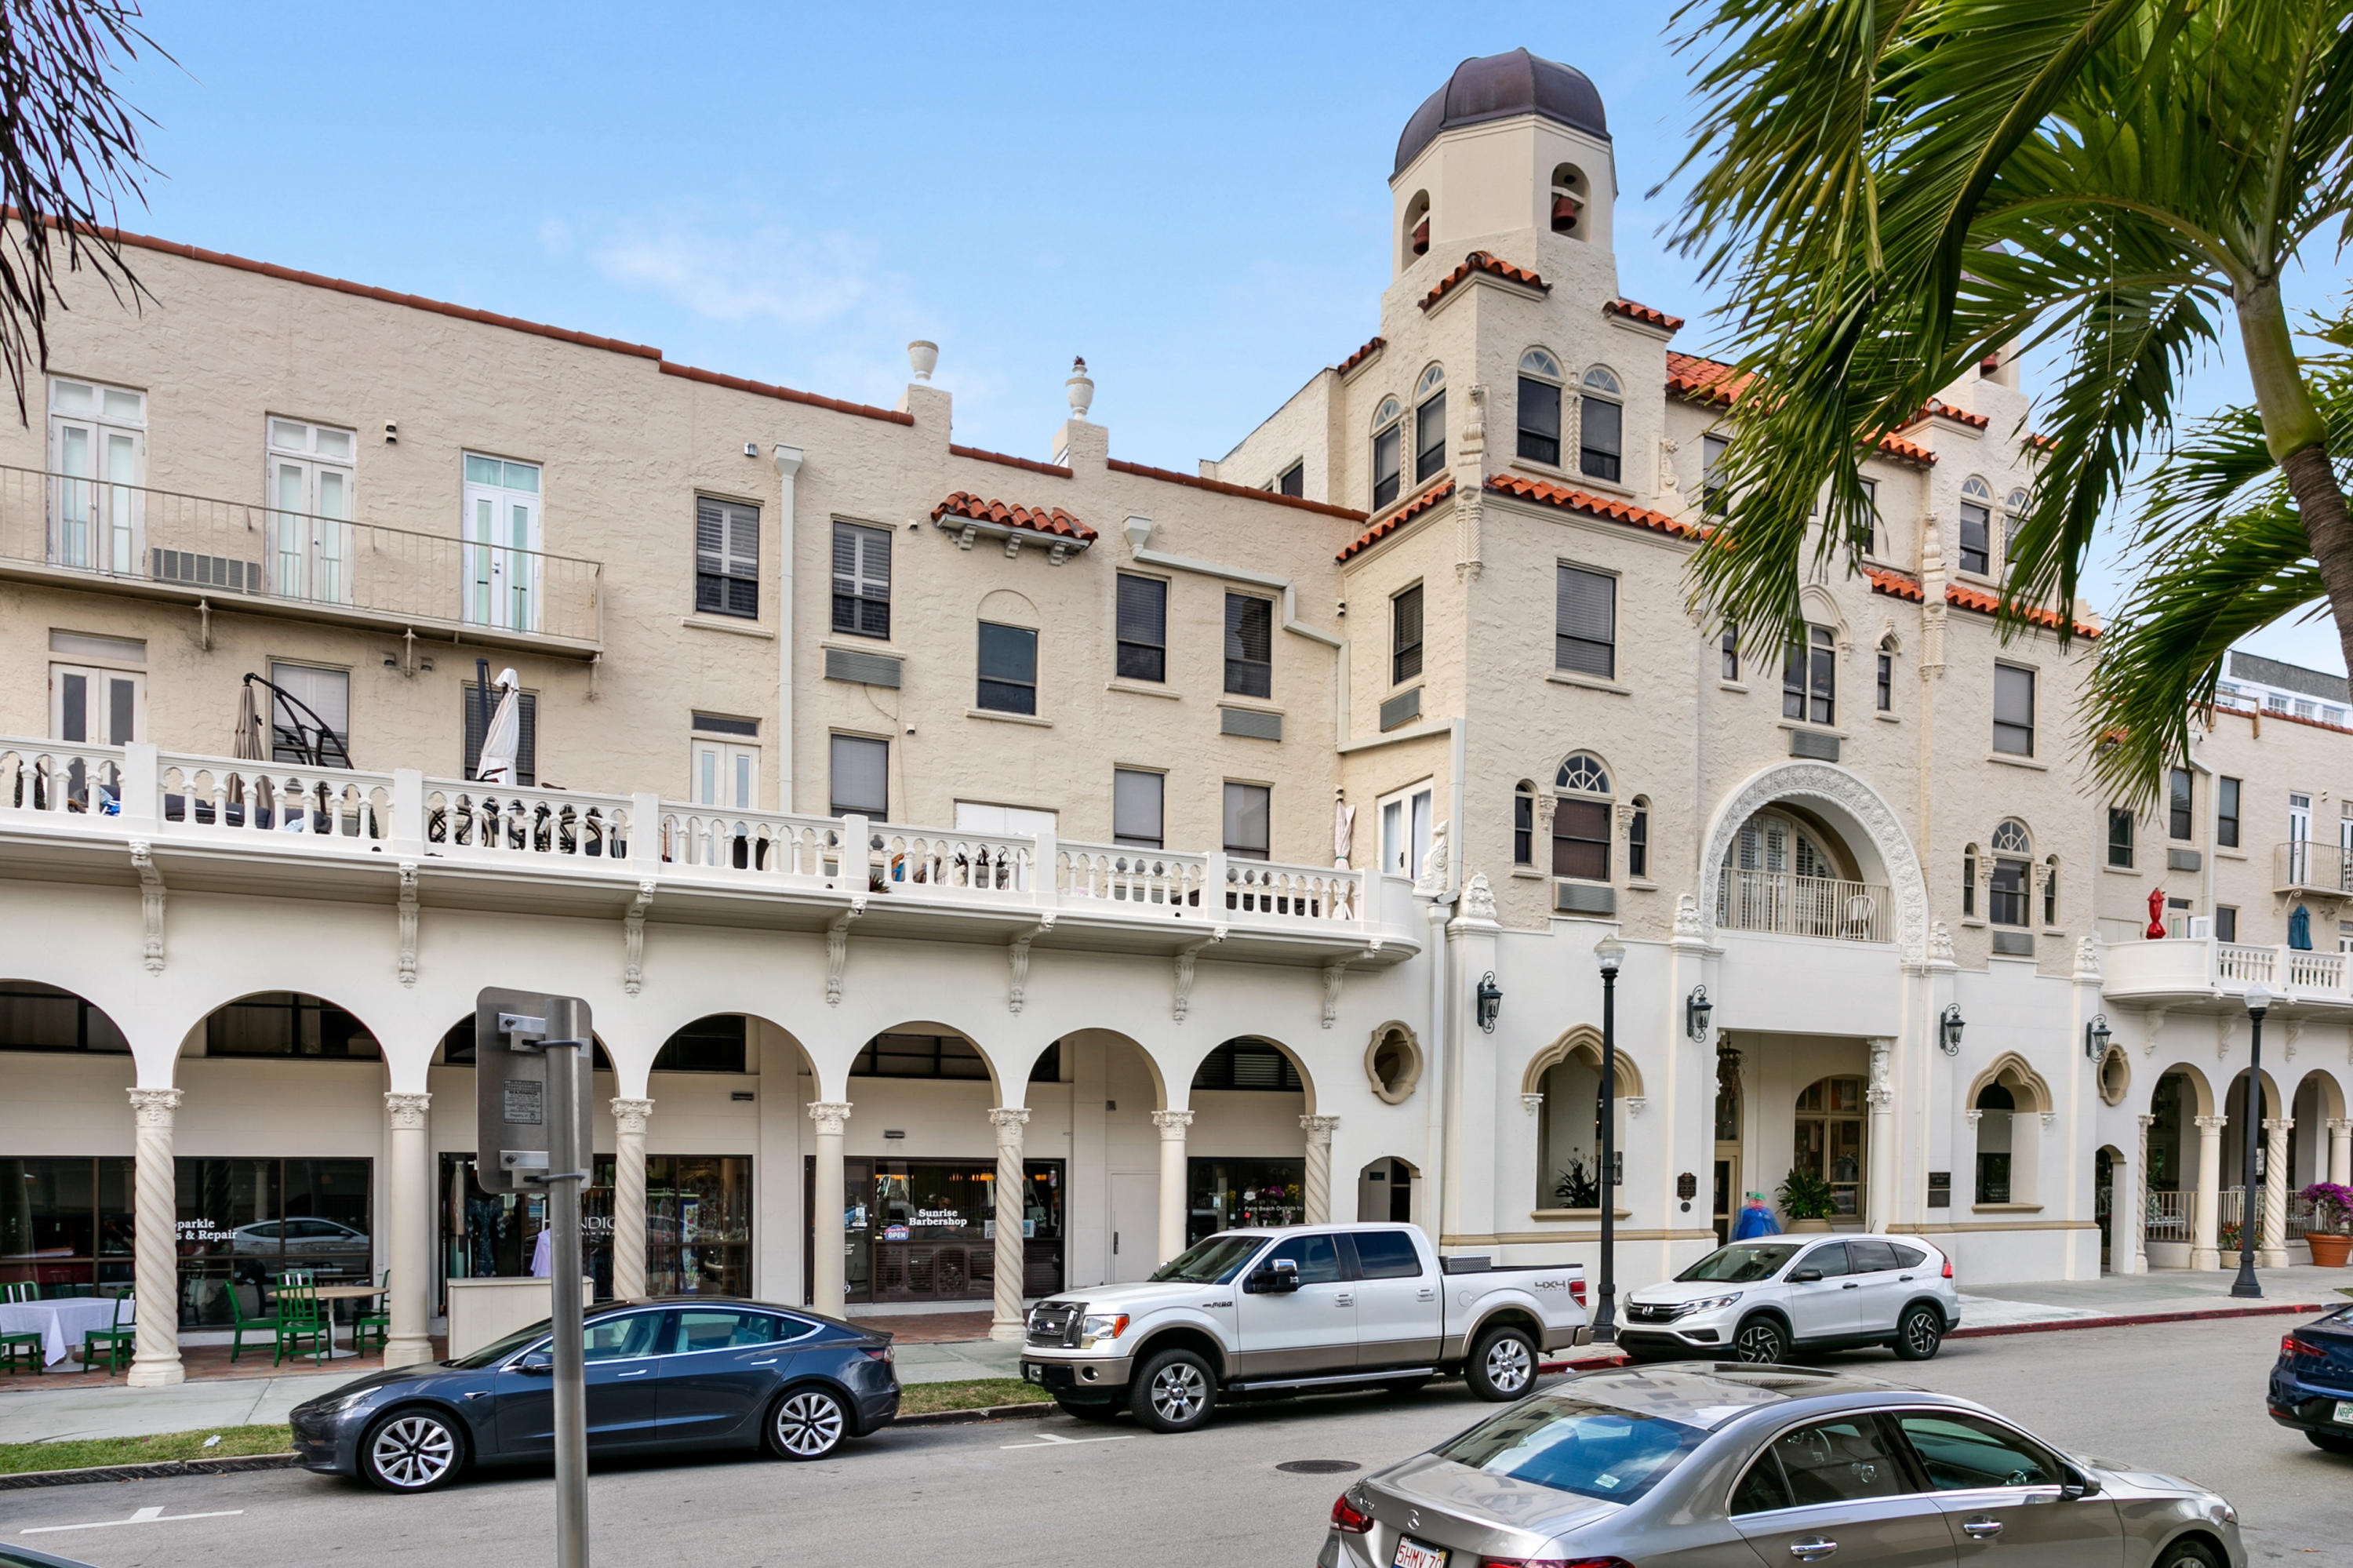 Perfect Palm Beach Quarantine Pied-a-terre penthouse !Spanish and Mediterranean architecture in this Grand Dame historic landmark building where Fred Astaire and Ginger Rogers once danced in the courtyard. Sweeping views of the Breakers Hotel, a sneak peak of the ocean, and fabulous intracoastal fireworks displays on holidays ! Walk one block on famed turquoise white sandy beaches, the lake trail or right on your block are 3 banks, publix, French Pastry Shop, cobbler, cleaners, Classic Palm Beach Hair salon and an island full of award winning dining, private clubs and iconic Worth Avenue for luxury shopping.Flooded with natural light,murphy bed, gourmet kitchen, and a frameless shower. Soaring cathedral ceilings, whitewashed beams. The only penthouse on the market !